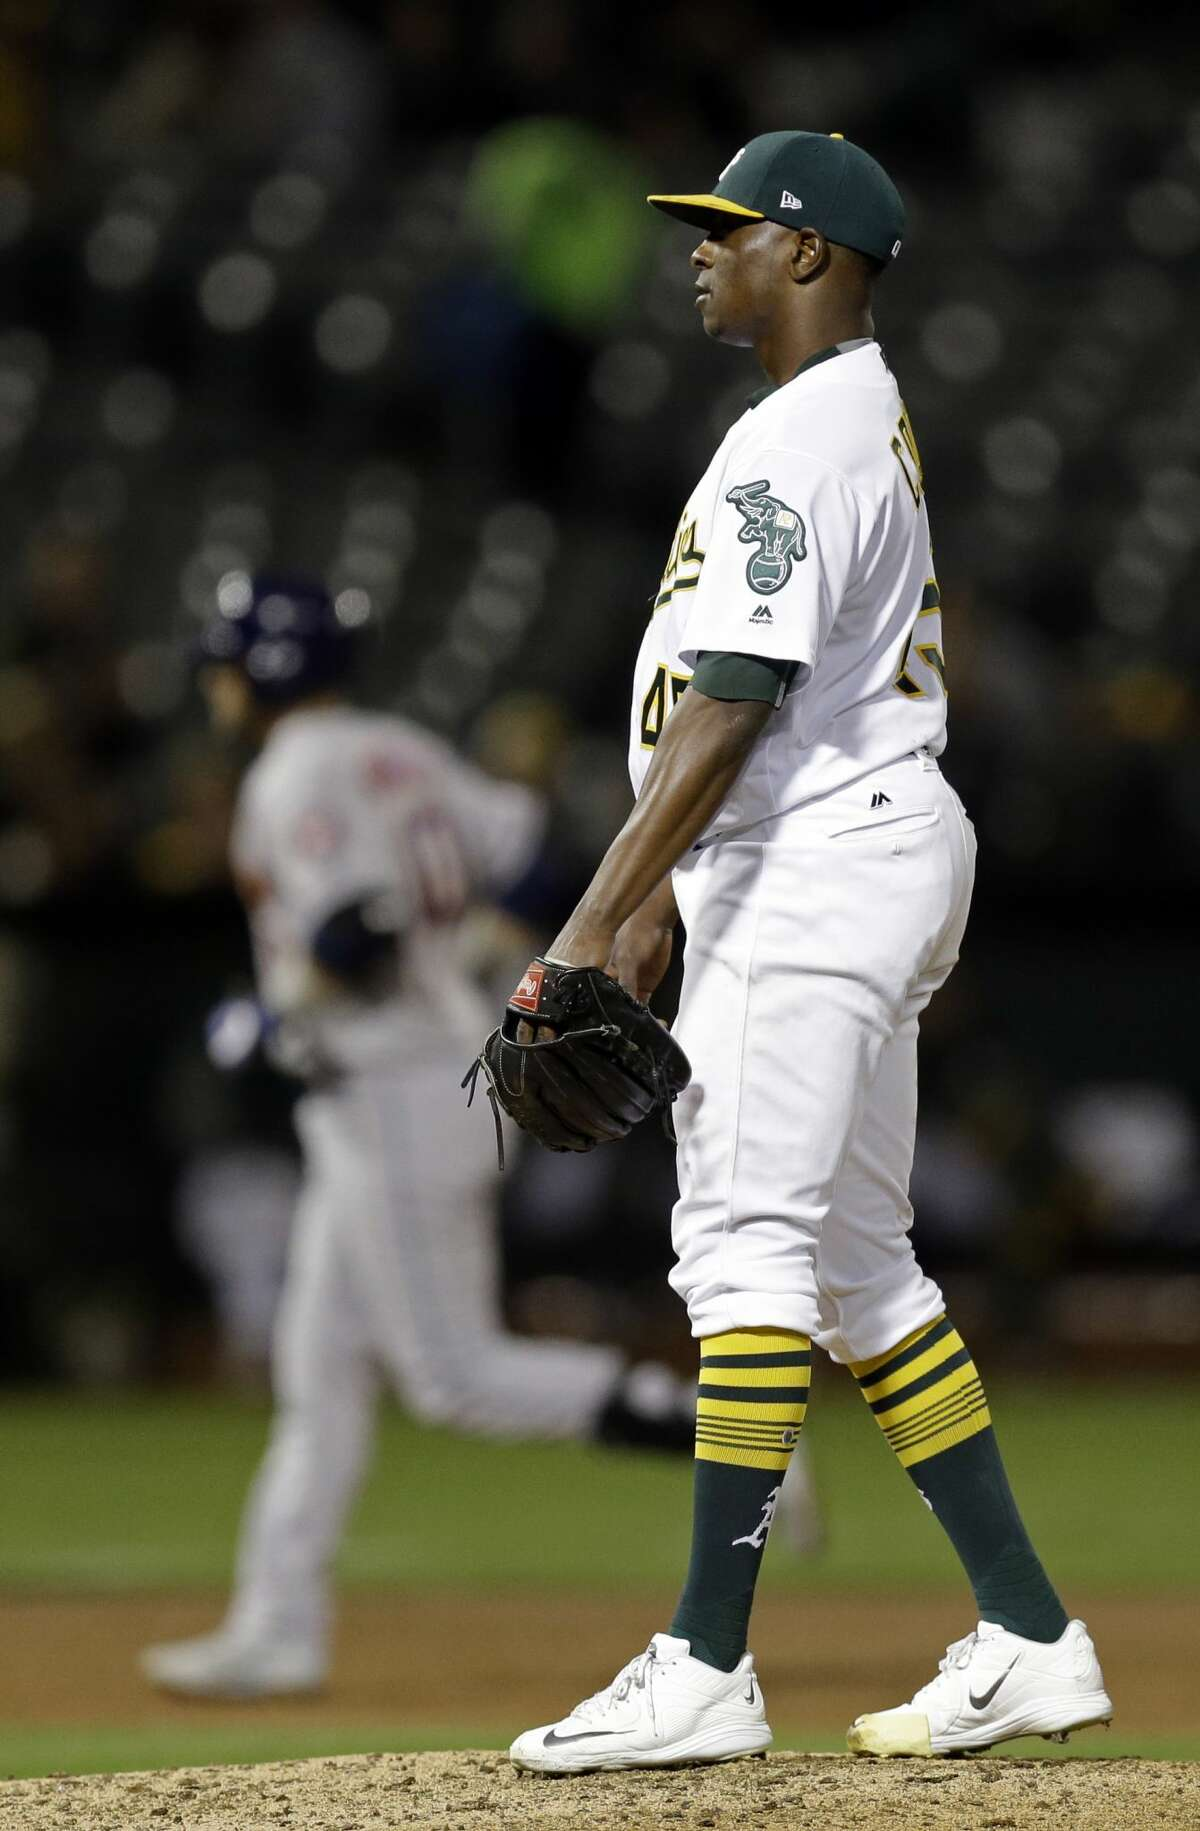 Oakland Athletics pitcher Jharel Cotton, right, waits for Houston Astros' Yuli Gurriel, left, to run the bases after hitting a two-run home run in the third inning of a baseball game Friday, Sept. 8, 2017, in Oakland, Calif. (AP Photo/Ben Margot)